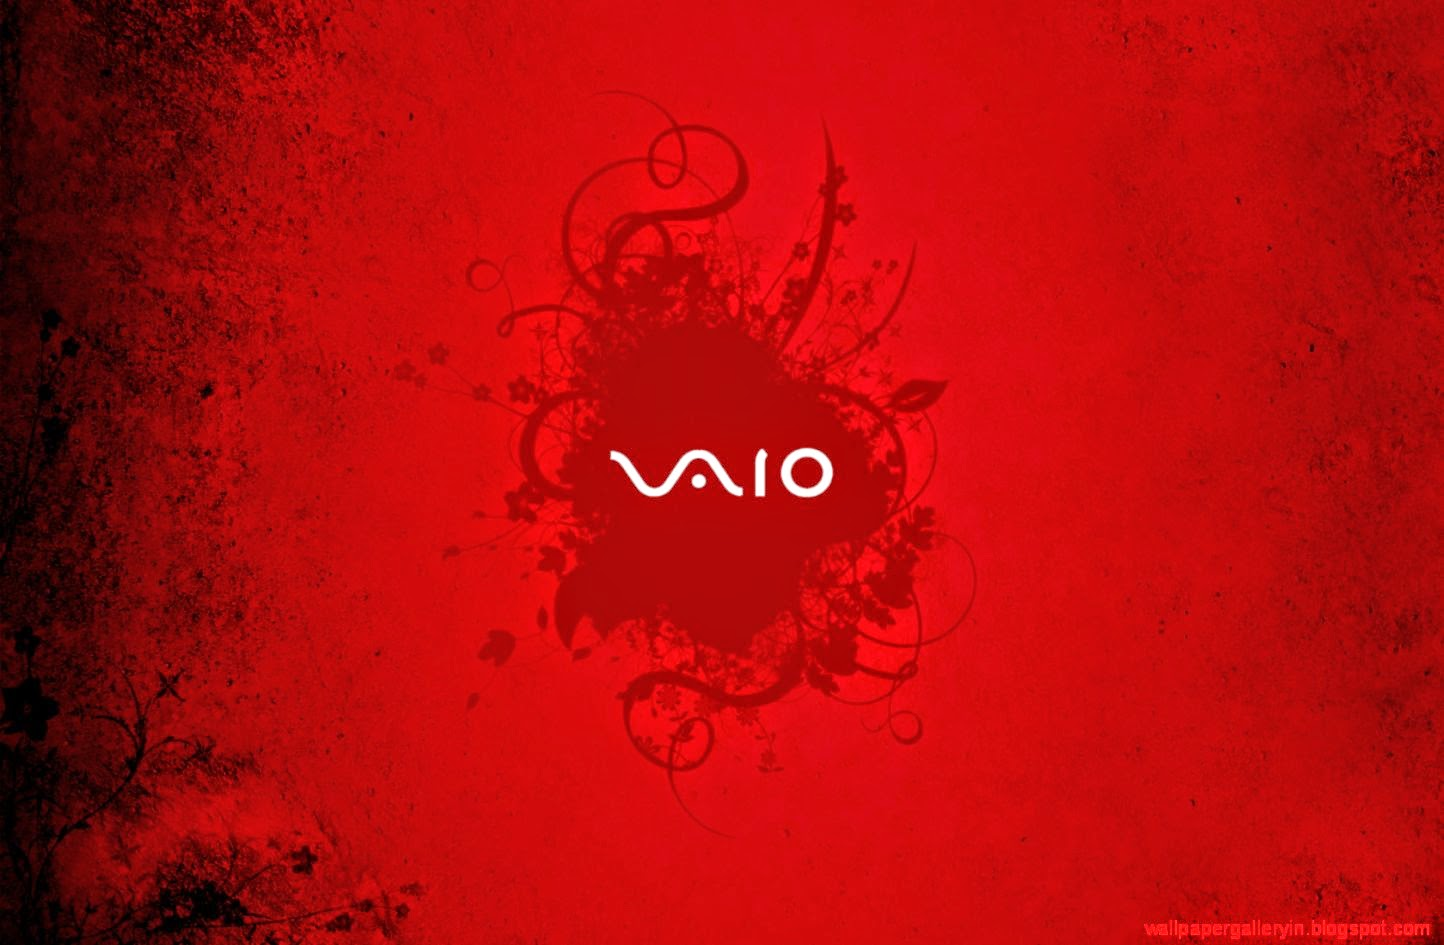 Sony Hd Wallpaper 74 Images: Sony Vaio Notebook Logo Wallpapers Hd